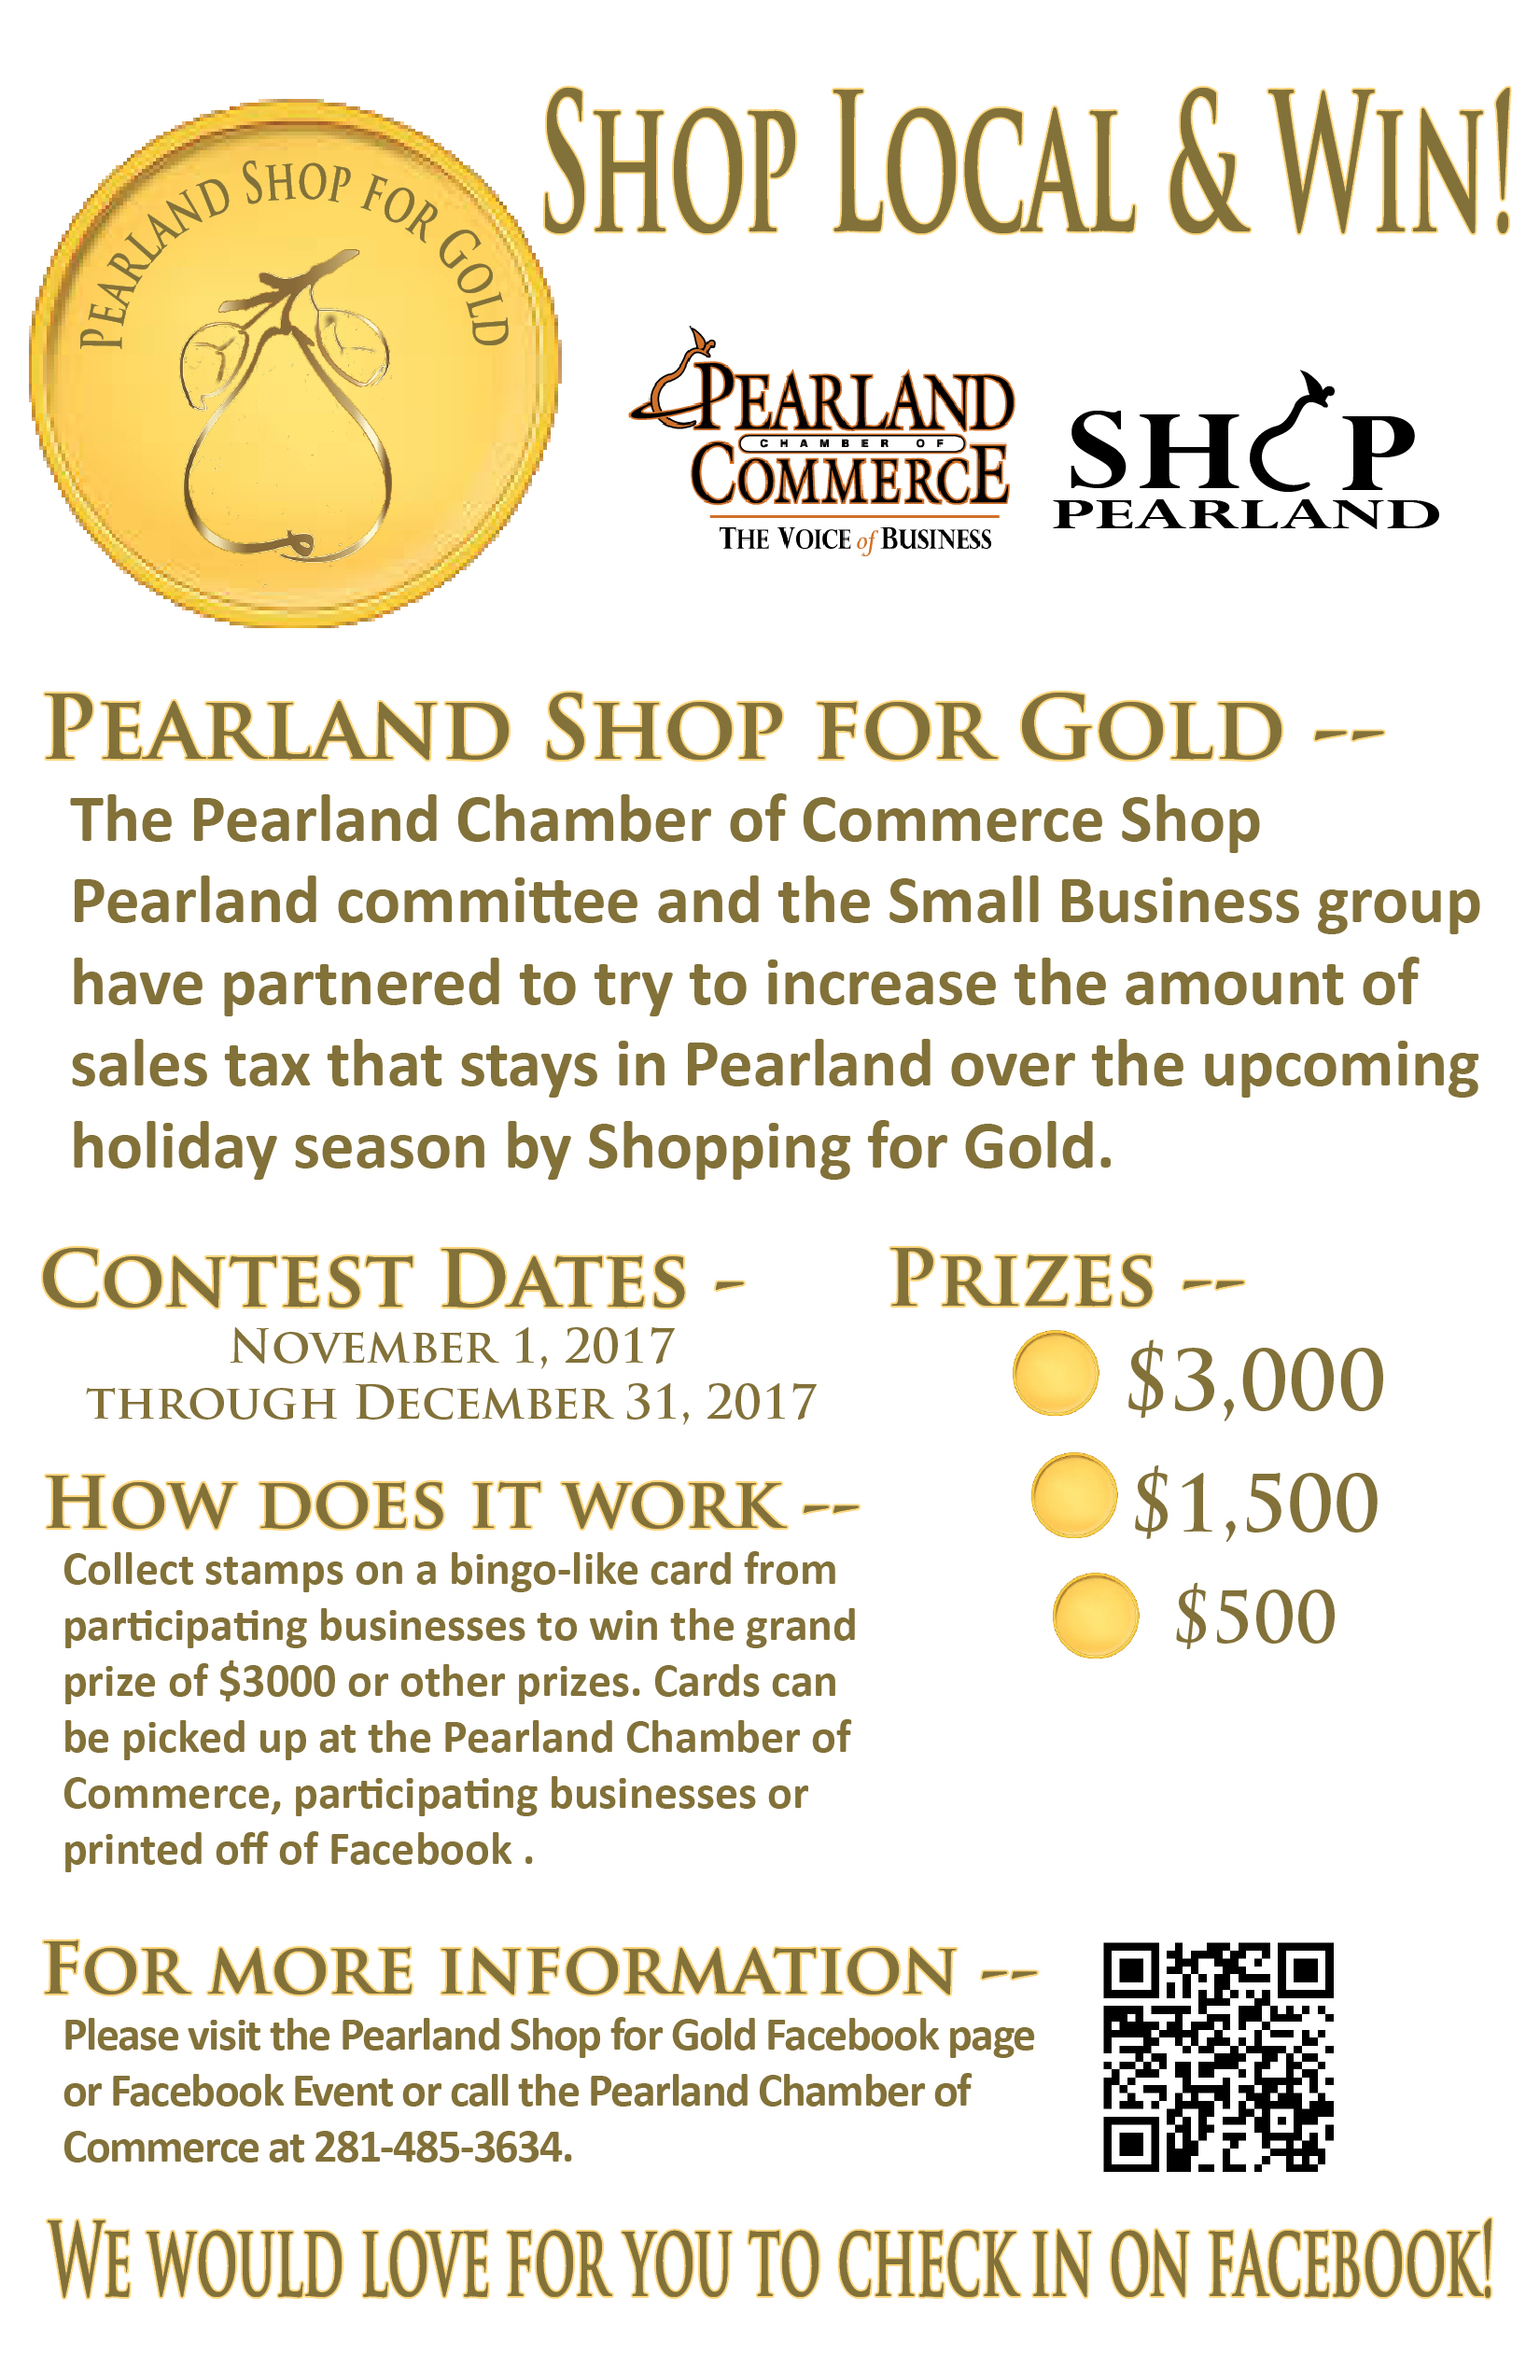 pearland shop for gold contest nov 1 2017 to dec 31 2017